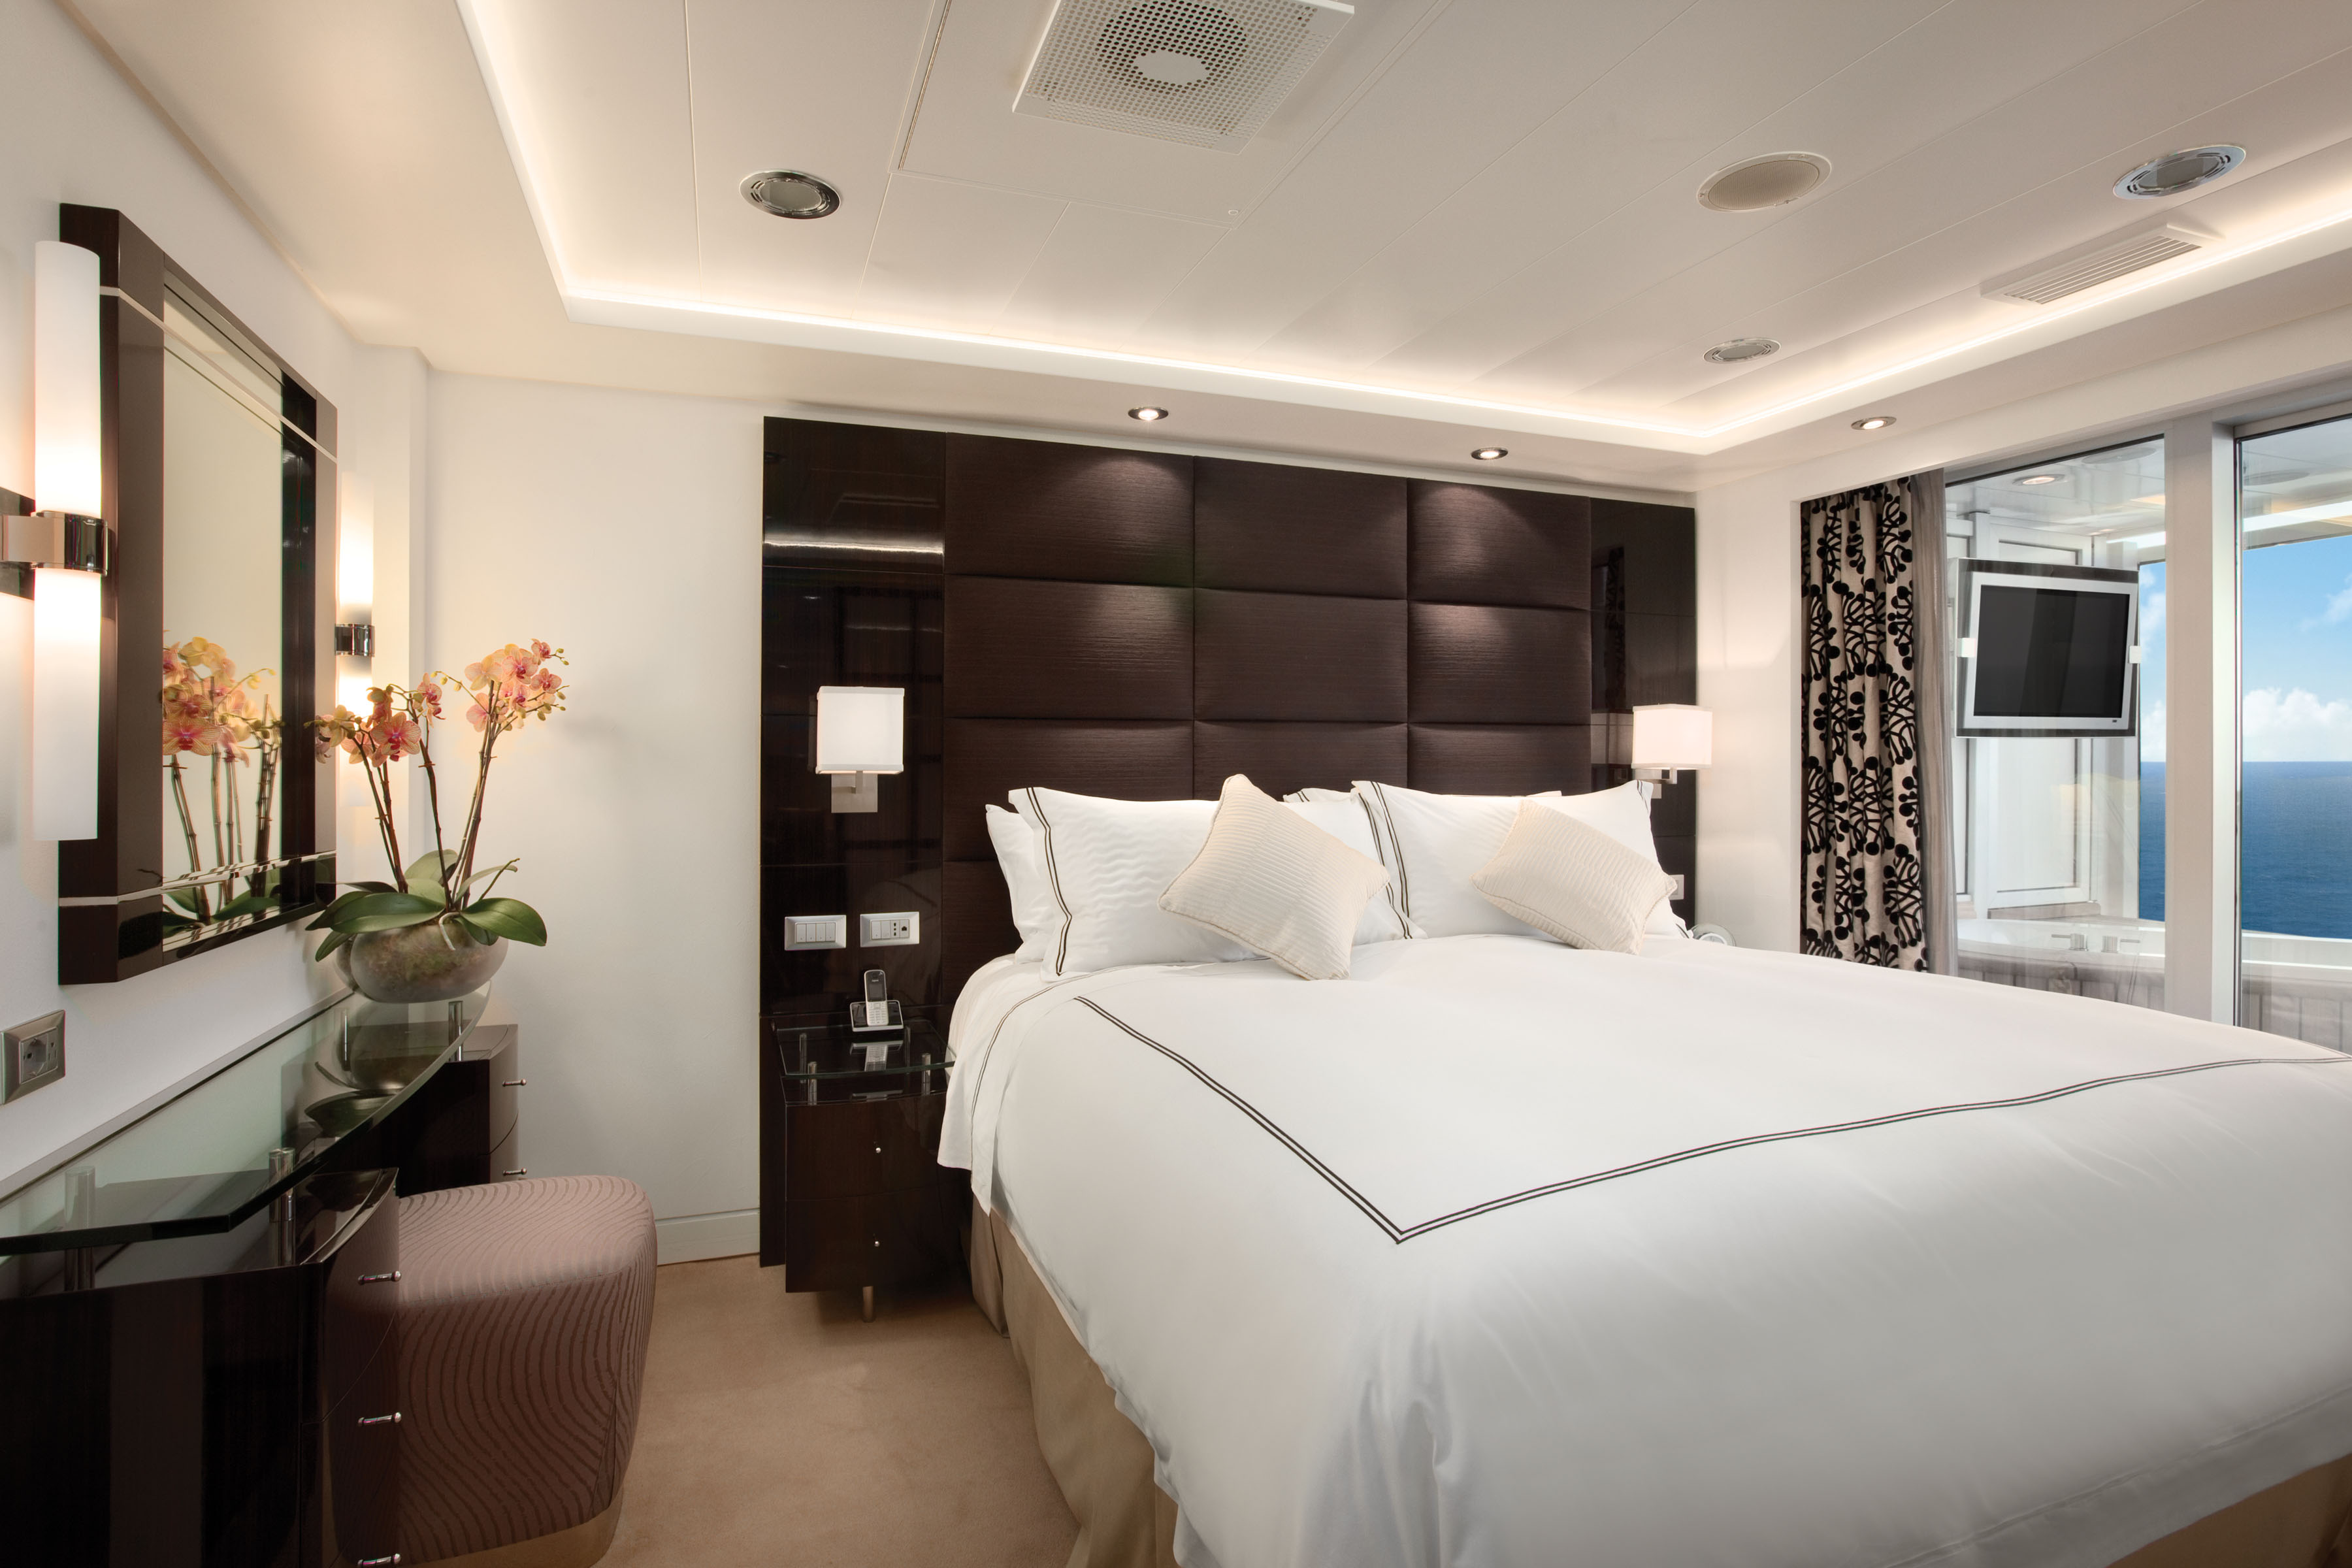 Oceania Cruises Oceania Class Accommodation Oceania Suite Bedroom.jpg